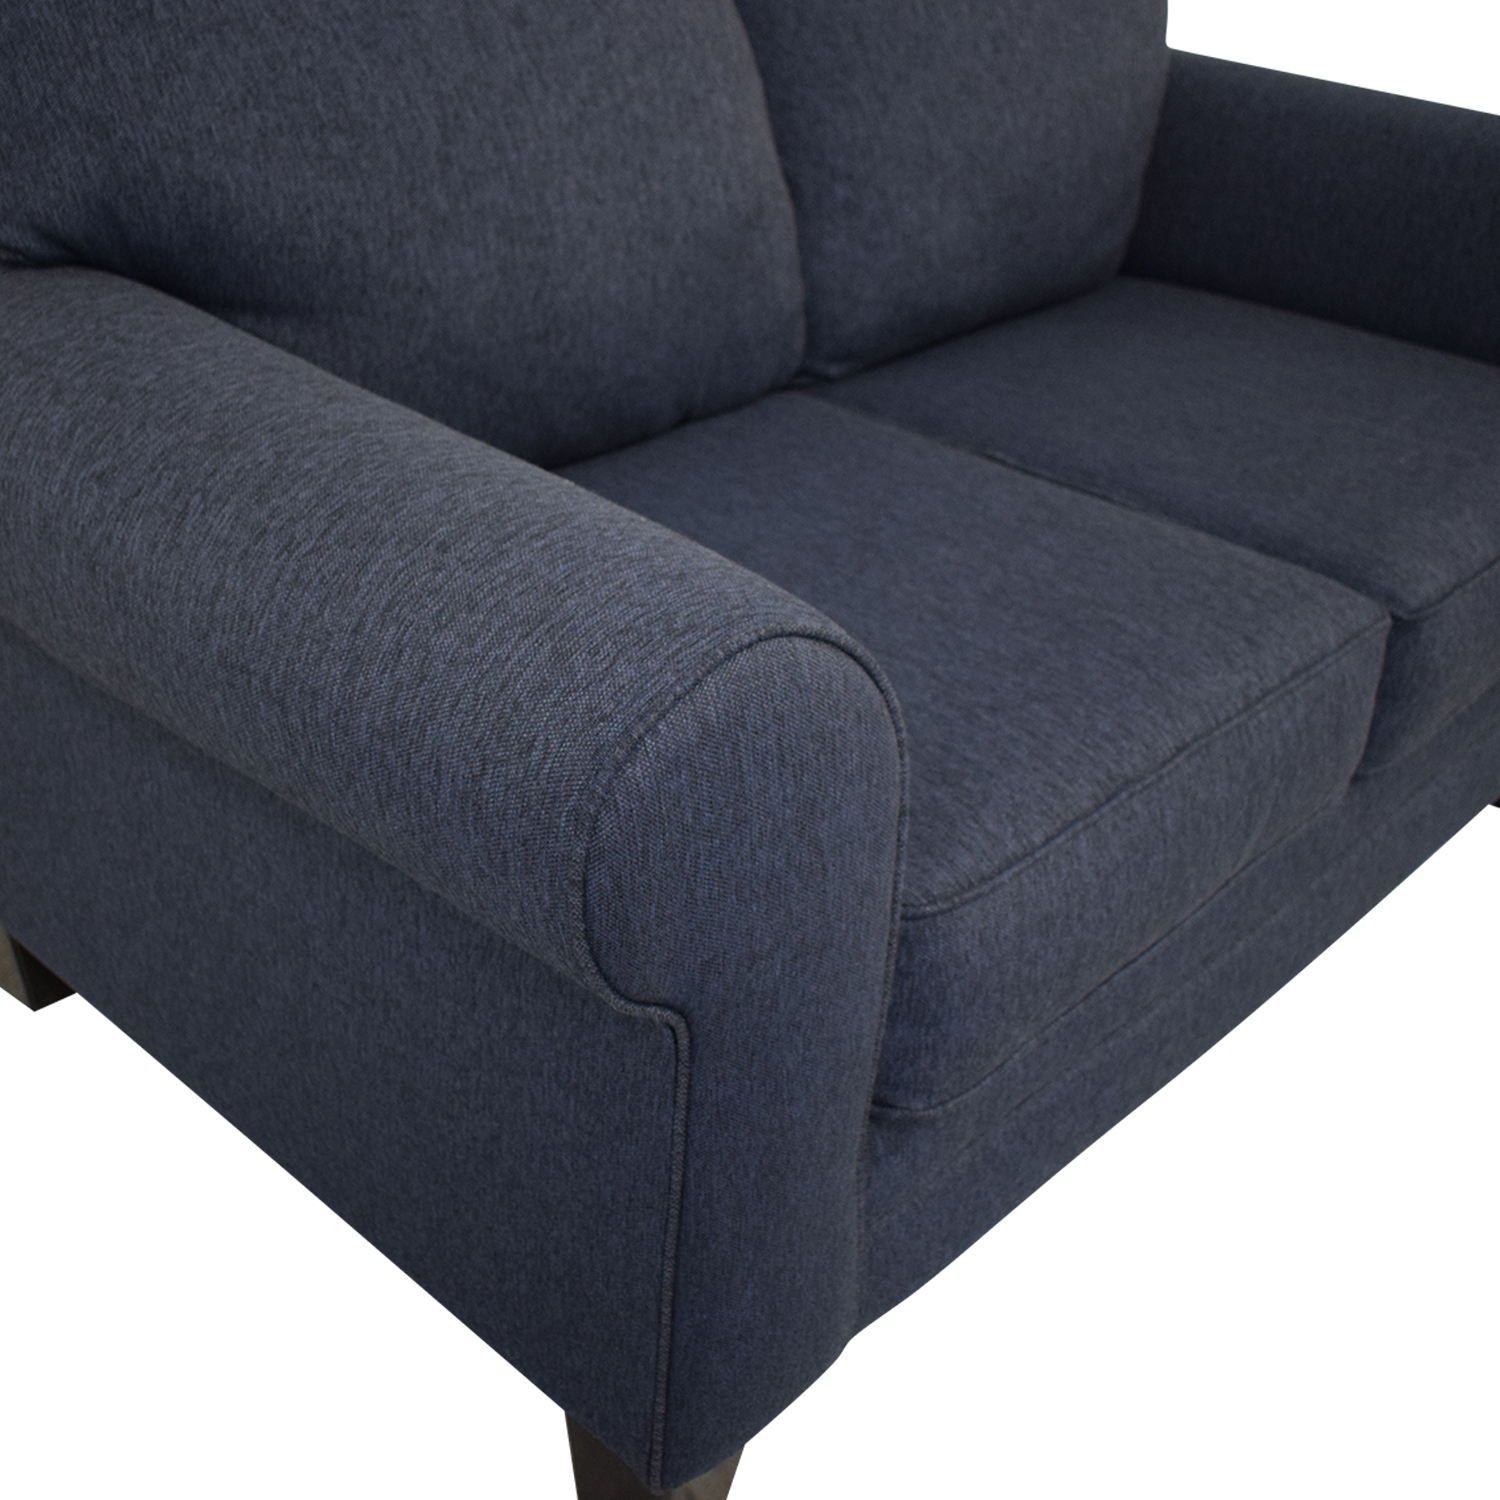 Raymour & Flanigan Raymour & Flanigan McKinley Loveseat dark blue